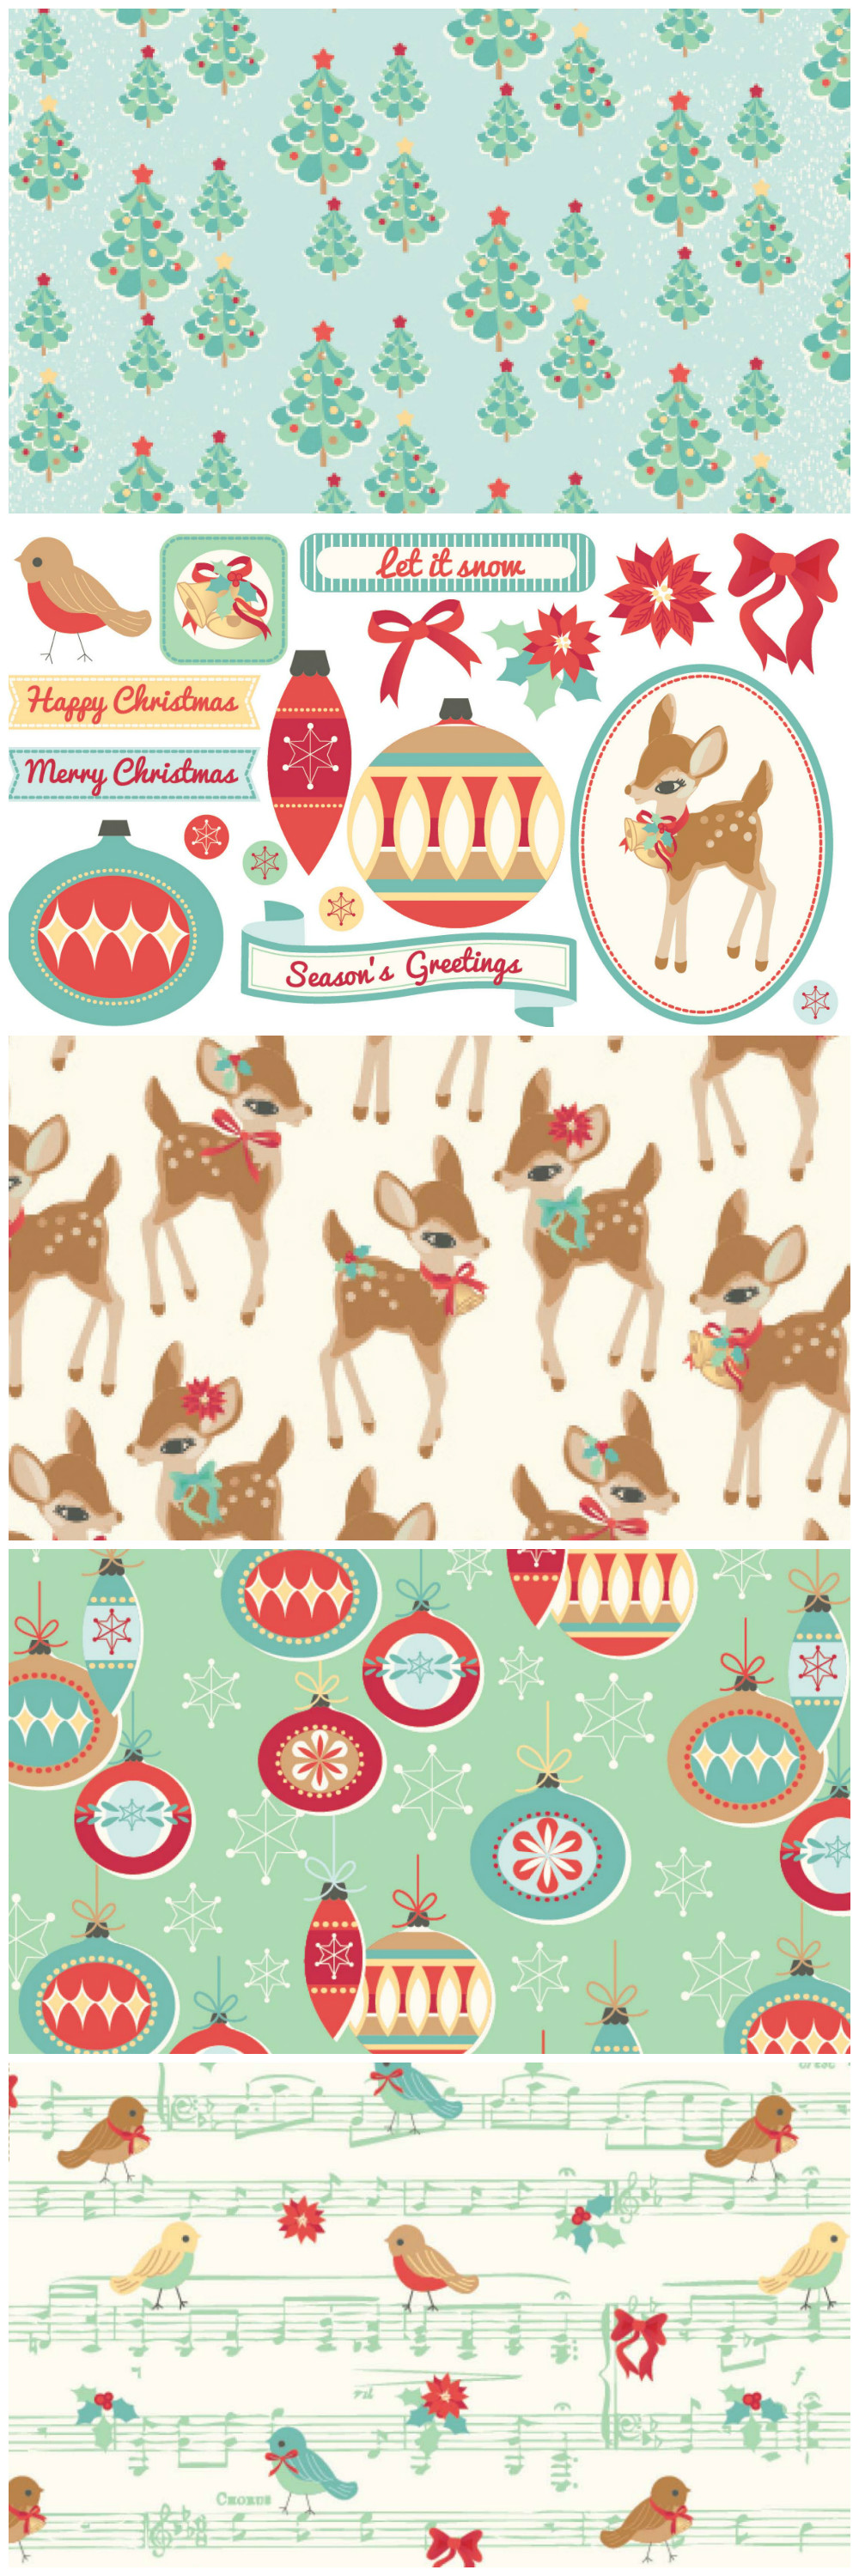 Iiii clipart hole punch Our Christmas retro Christmas cards